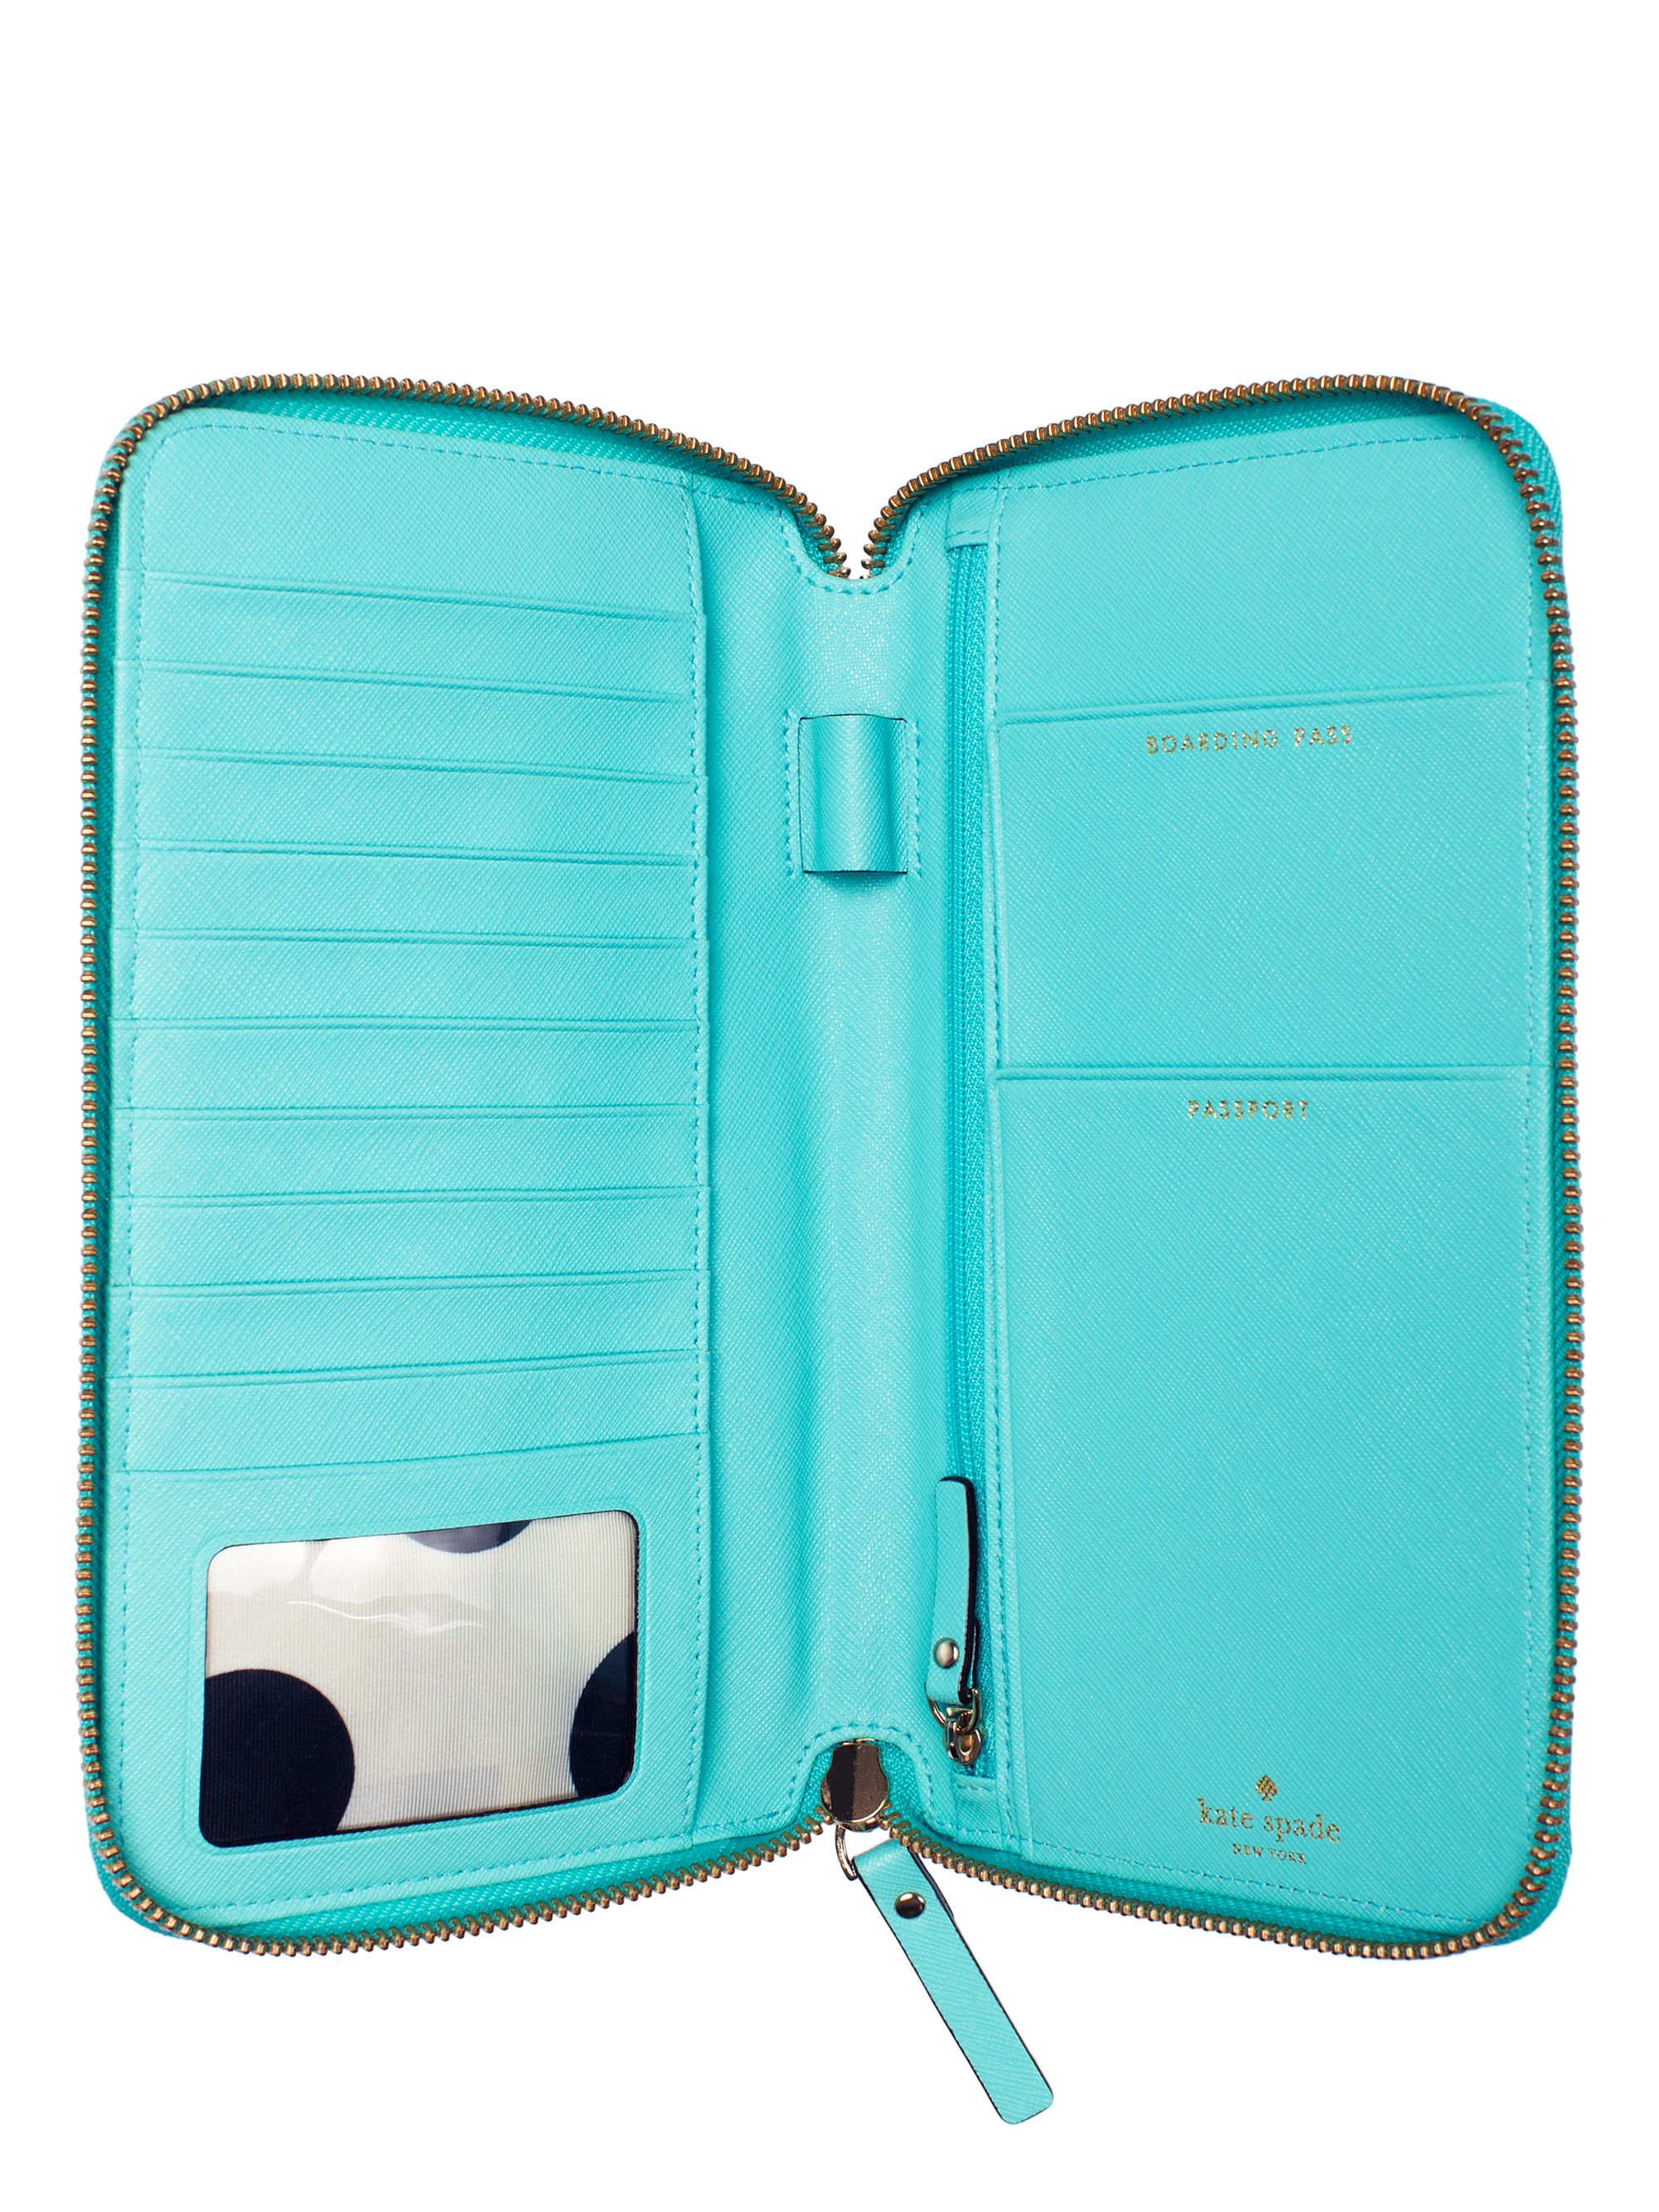 Kate Spade Light Blue Wallet